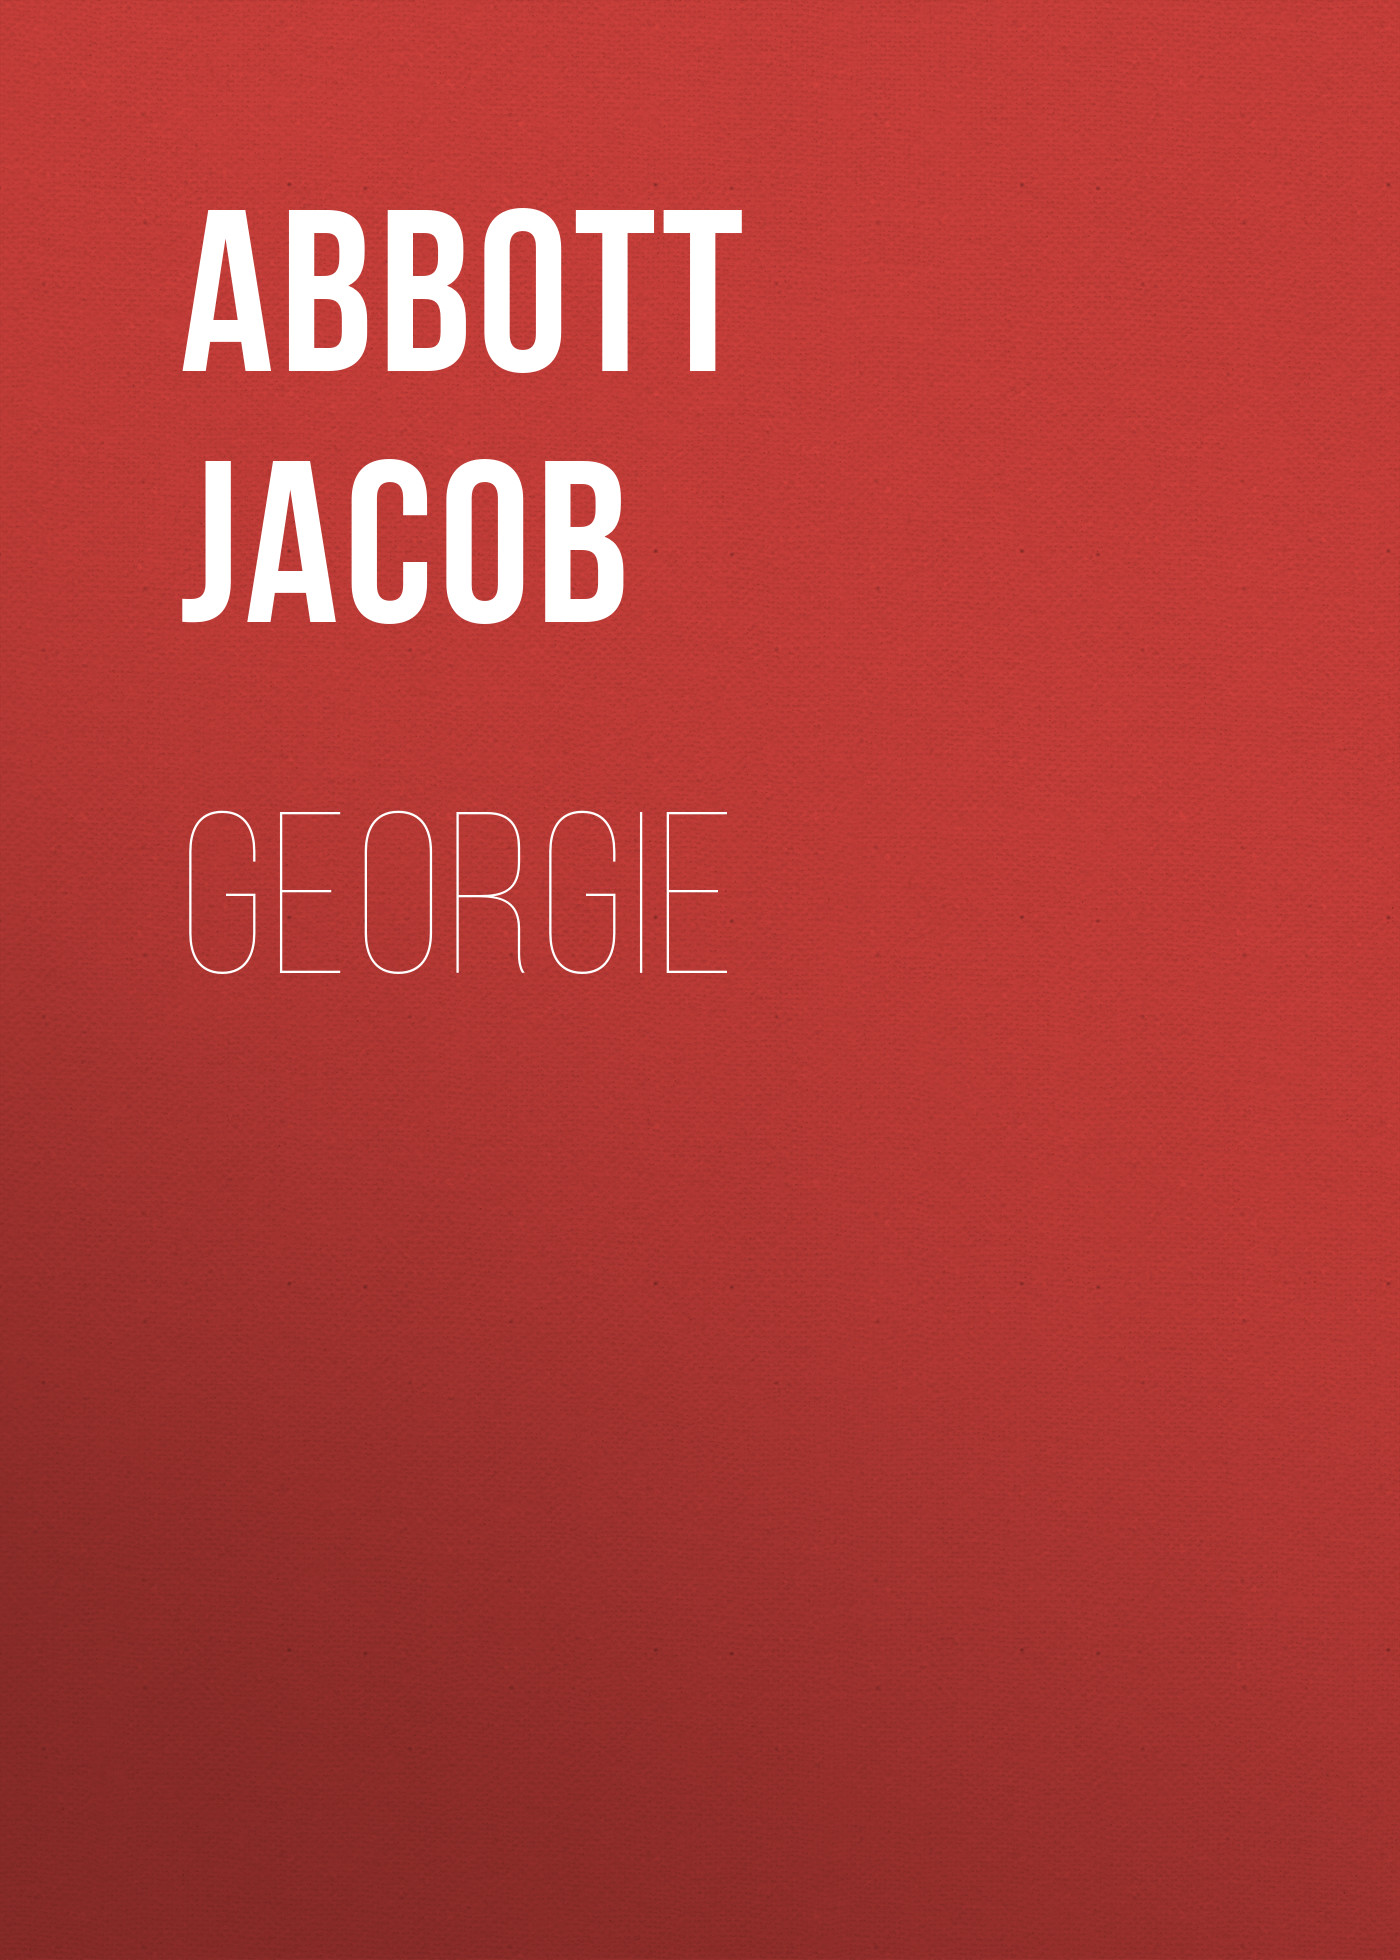 Abbott Jacob Georgie